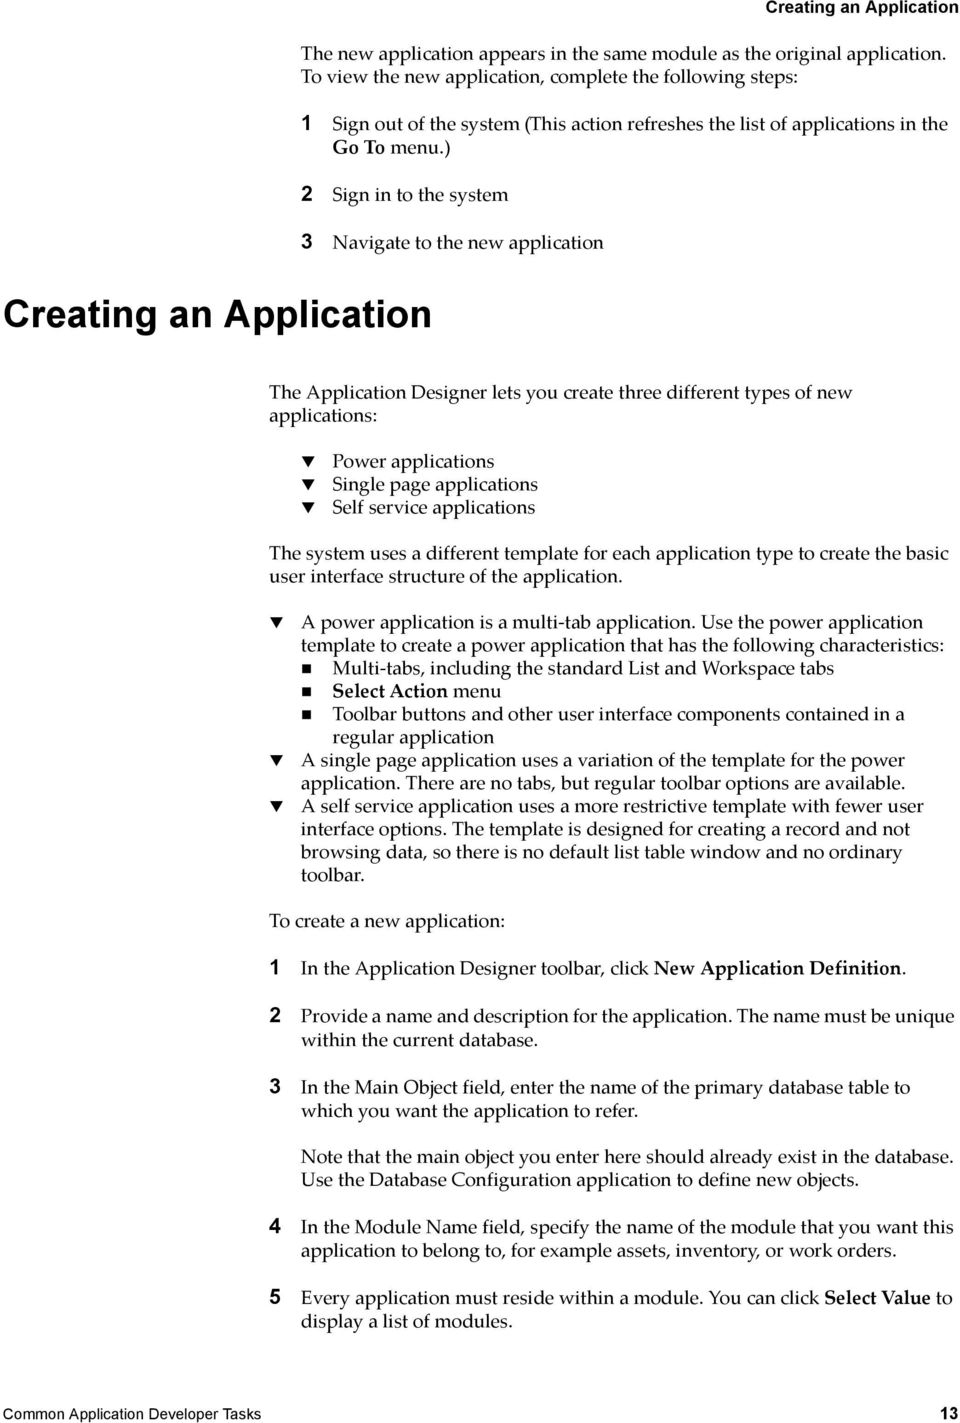 ) 2 Sign in to the system Creating an Application 3 Navigate to the new application The Application Designer lets you create three different types of new applications: Power applications Single page